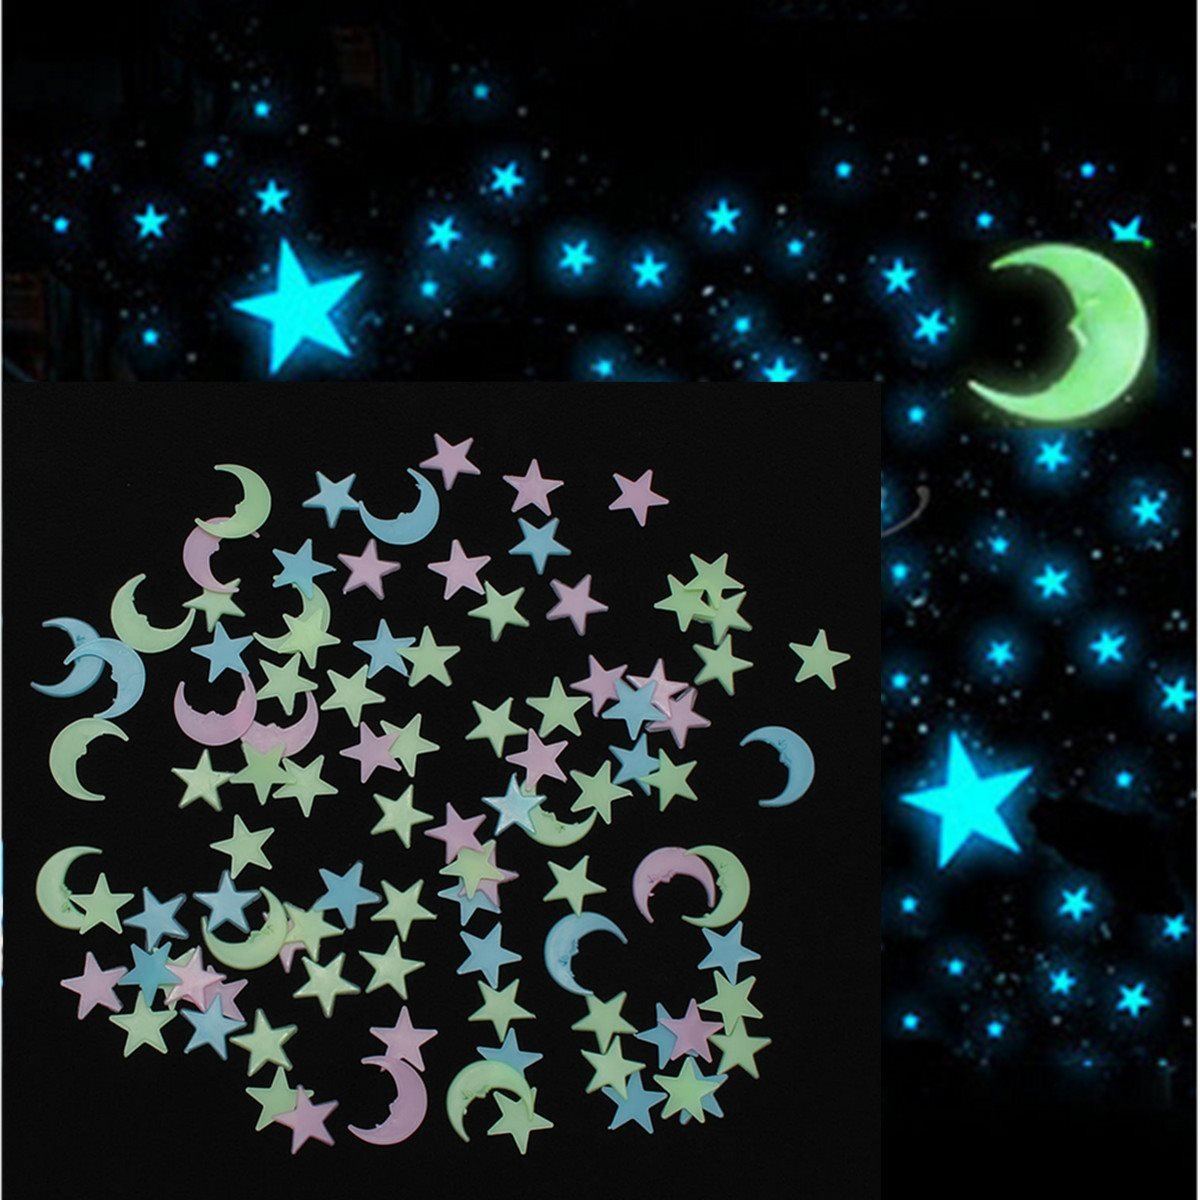 Buy stickonn multi colour fluorescent glow in the dark moon star wall stickersize 2 5 x 2 5 cm pack of 30 online at low prices in india amazon in